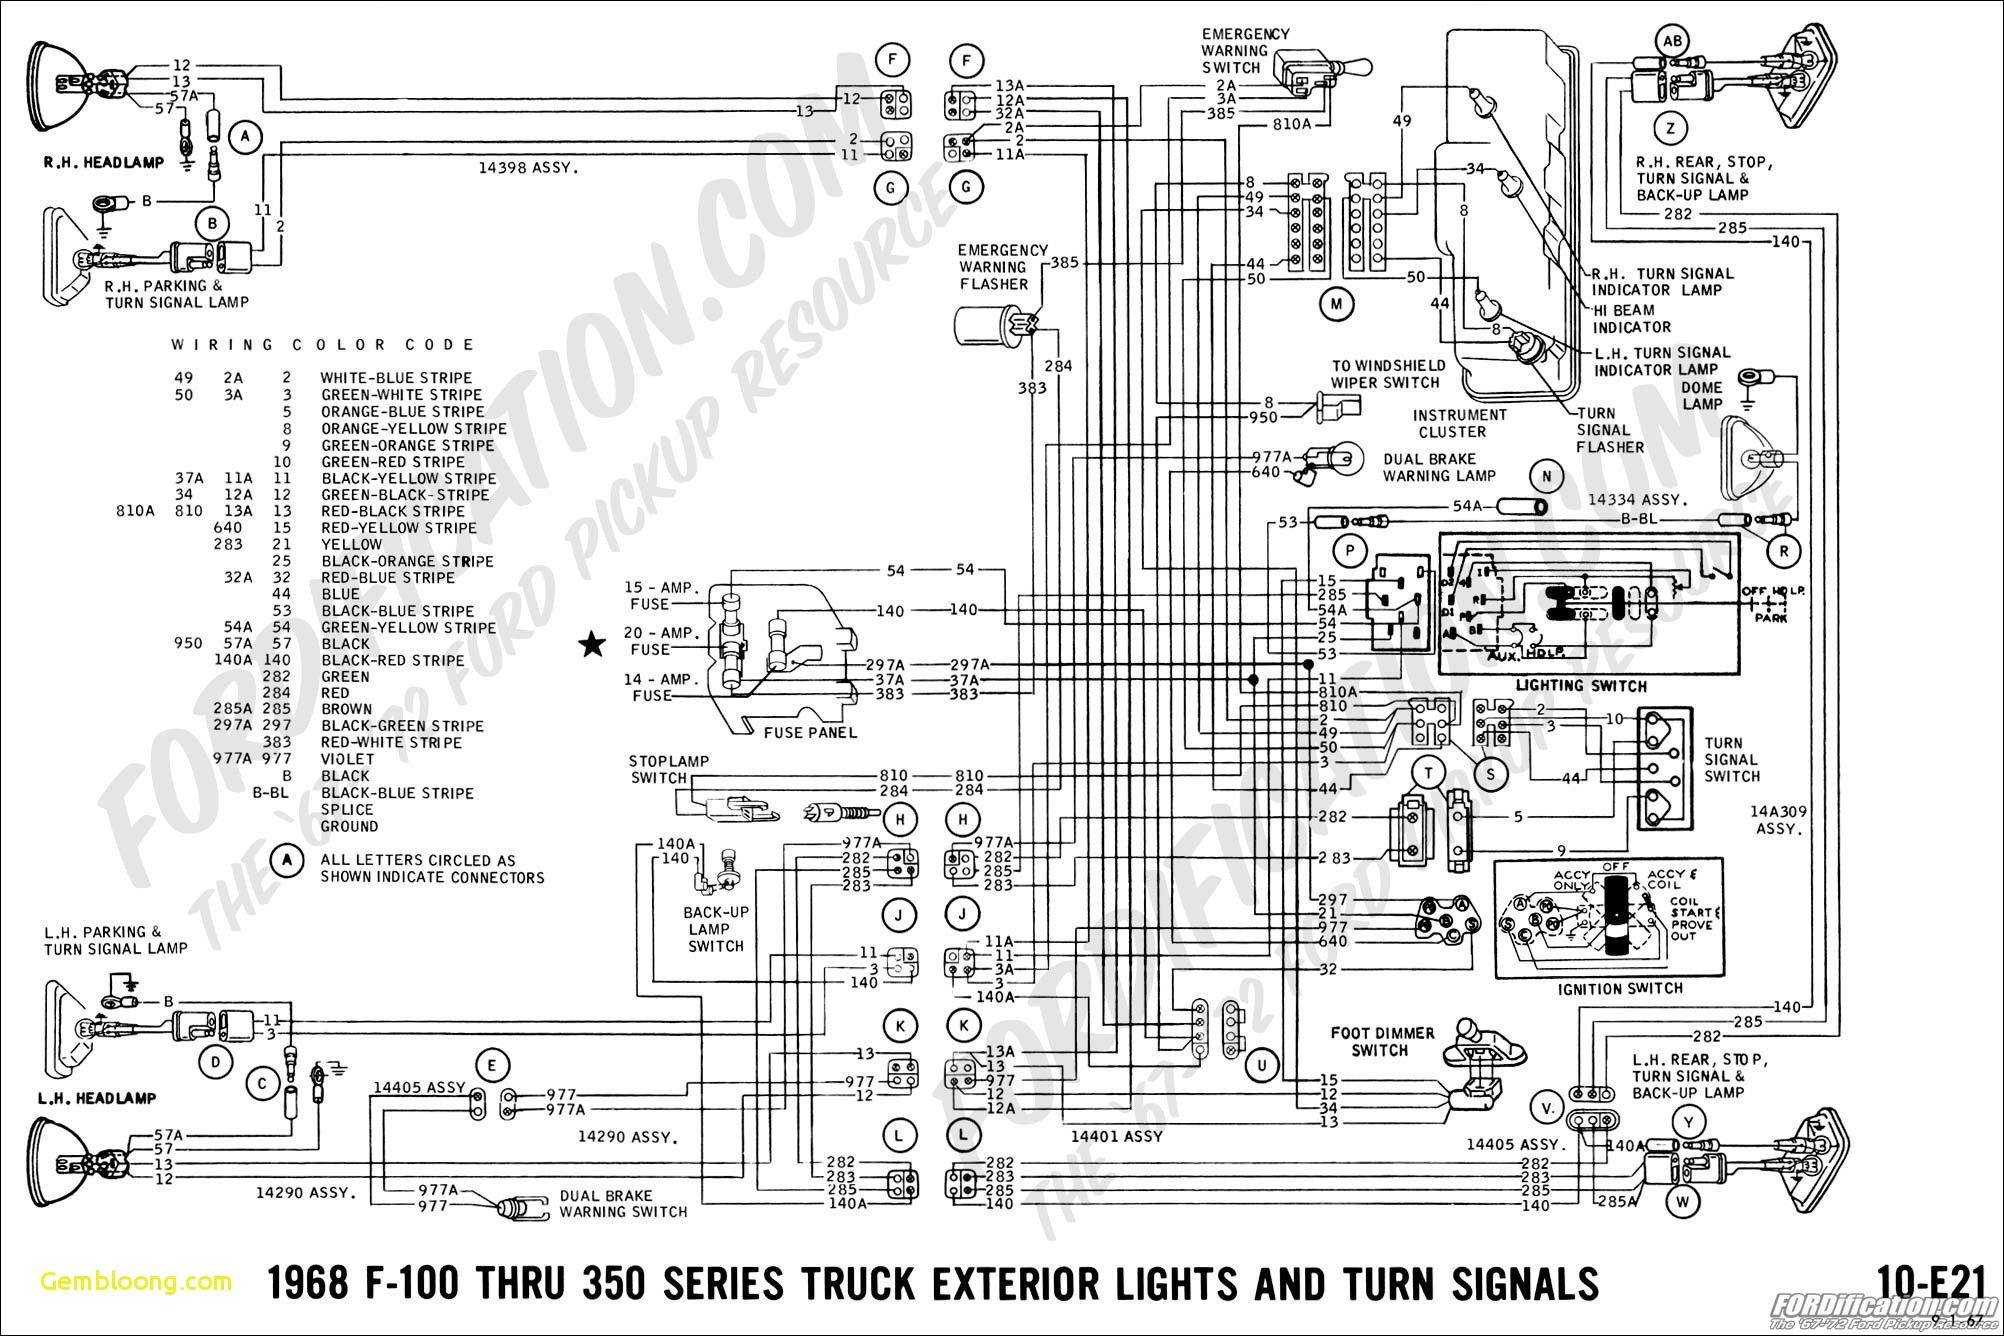 New Dodge Ram Tail Light Wiring Diagram With